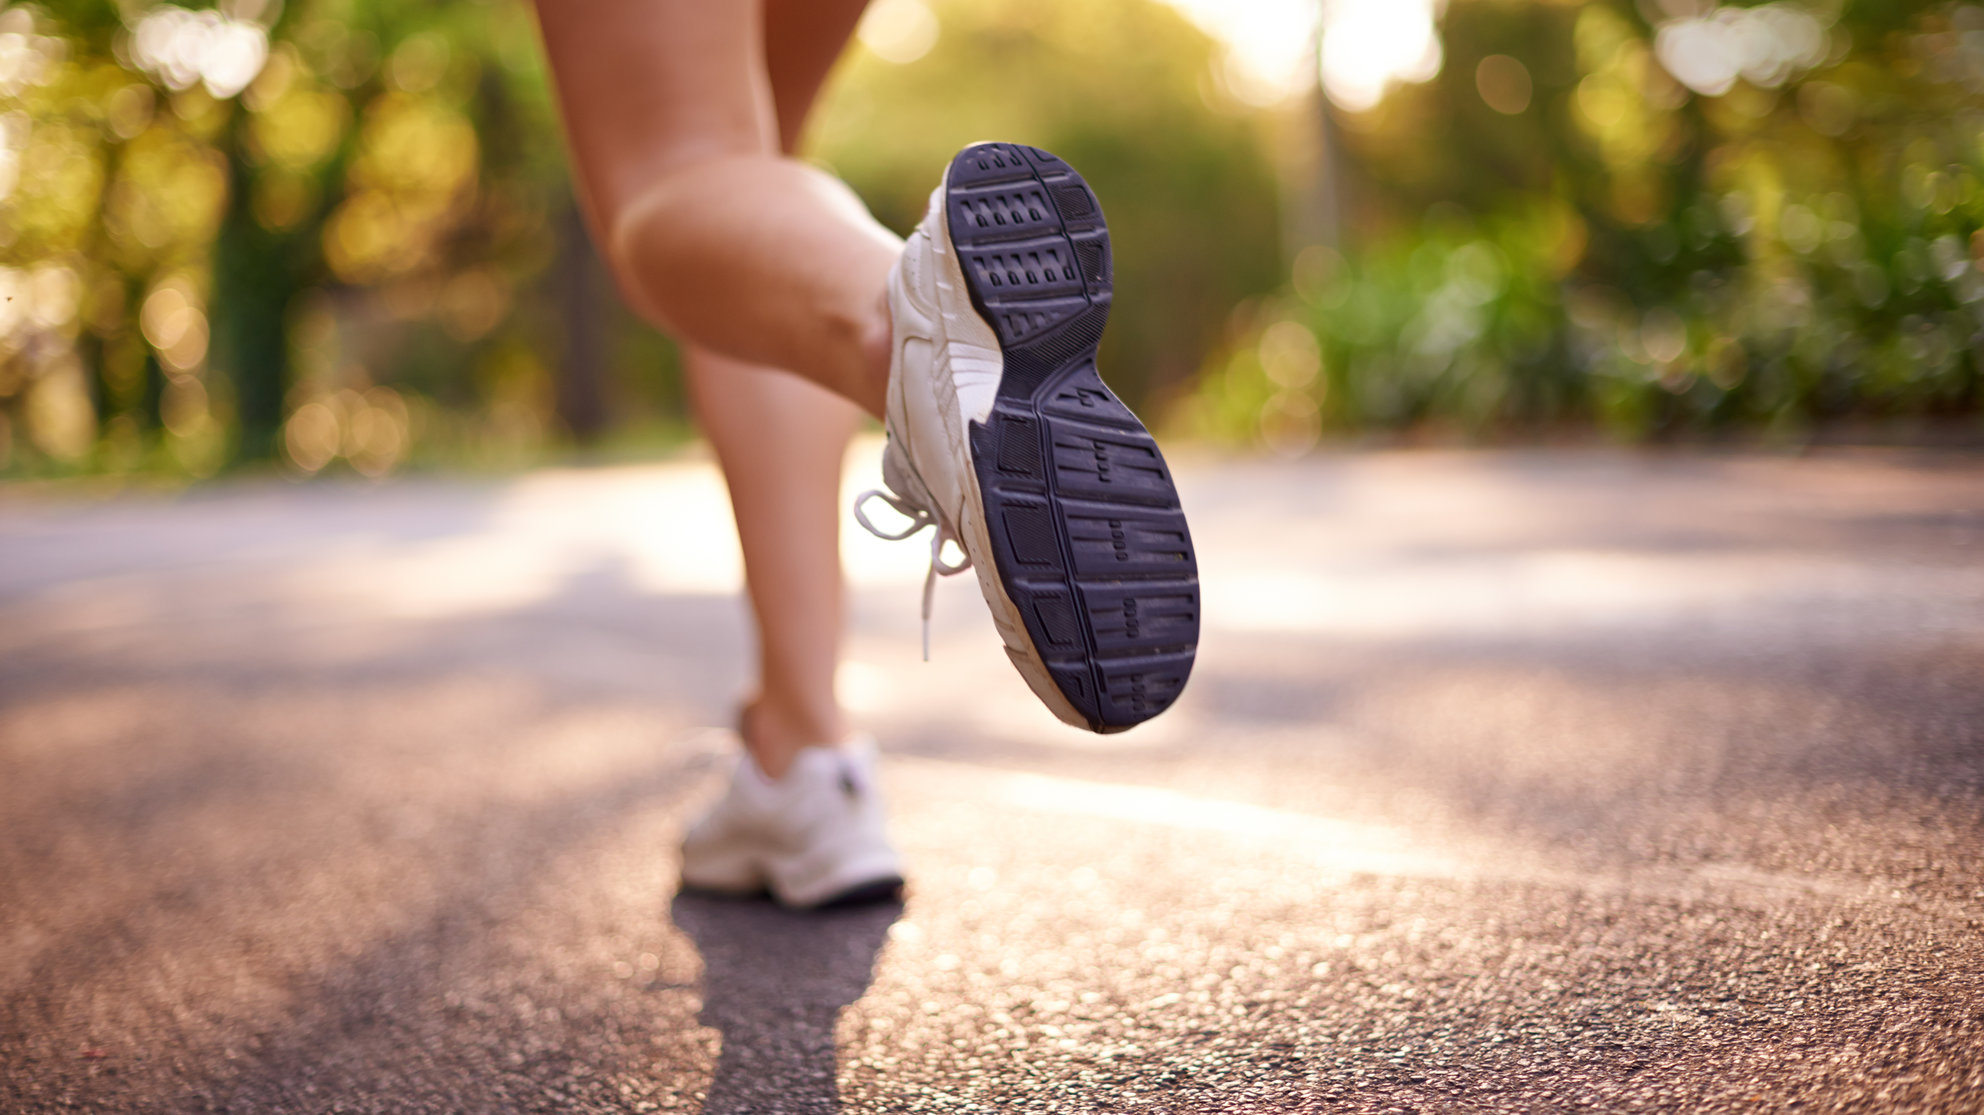 sneakers-running-shoes